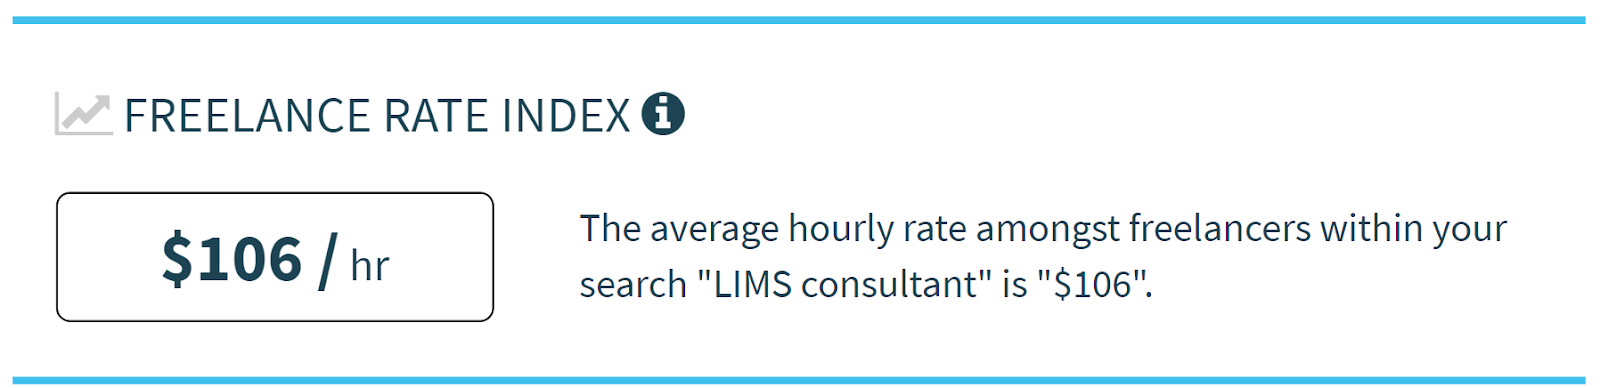 Average Hourly Rate of a LIMS Consultant